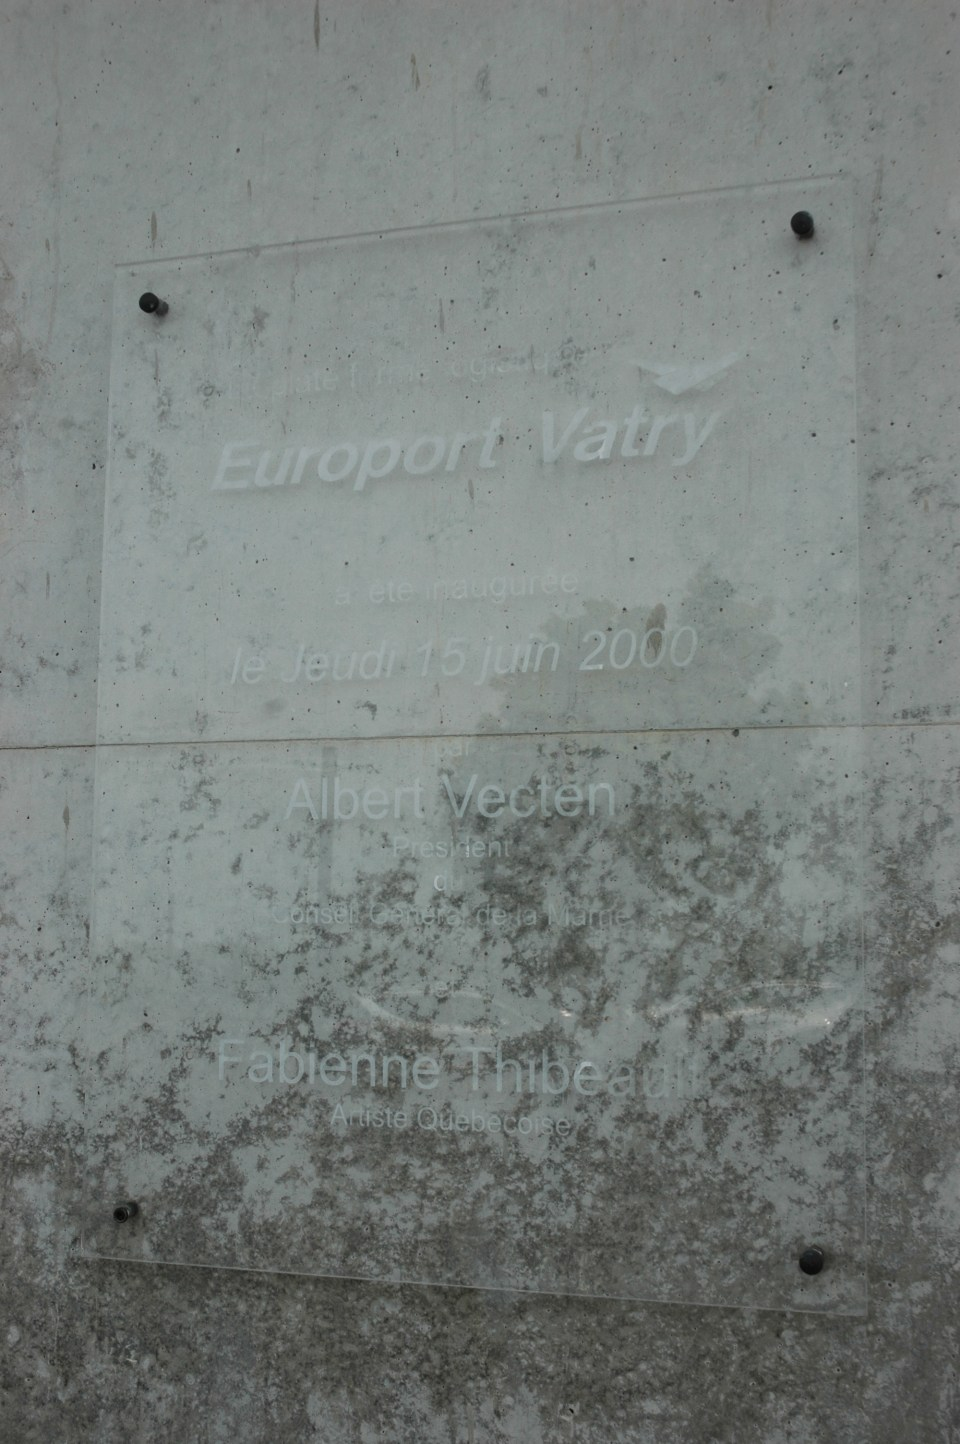 Plaque Europort Paris Vatry Bussy-Lettr閑 Marne (51)